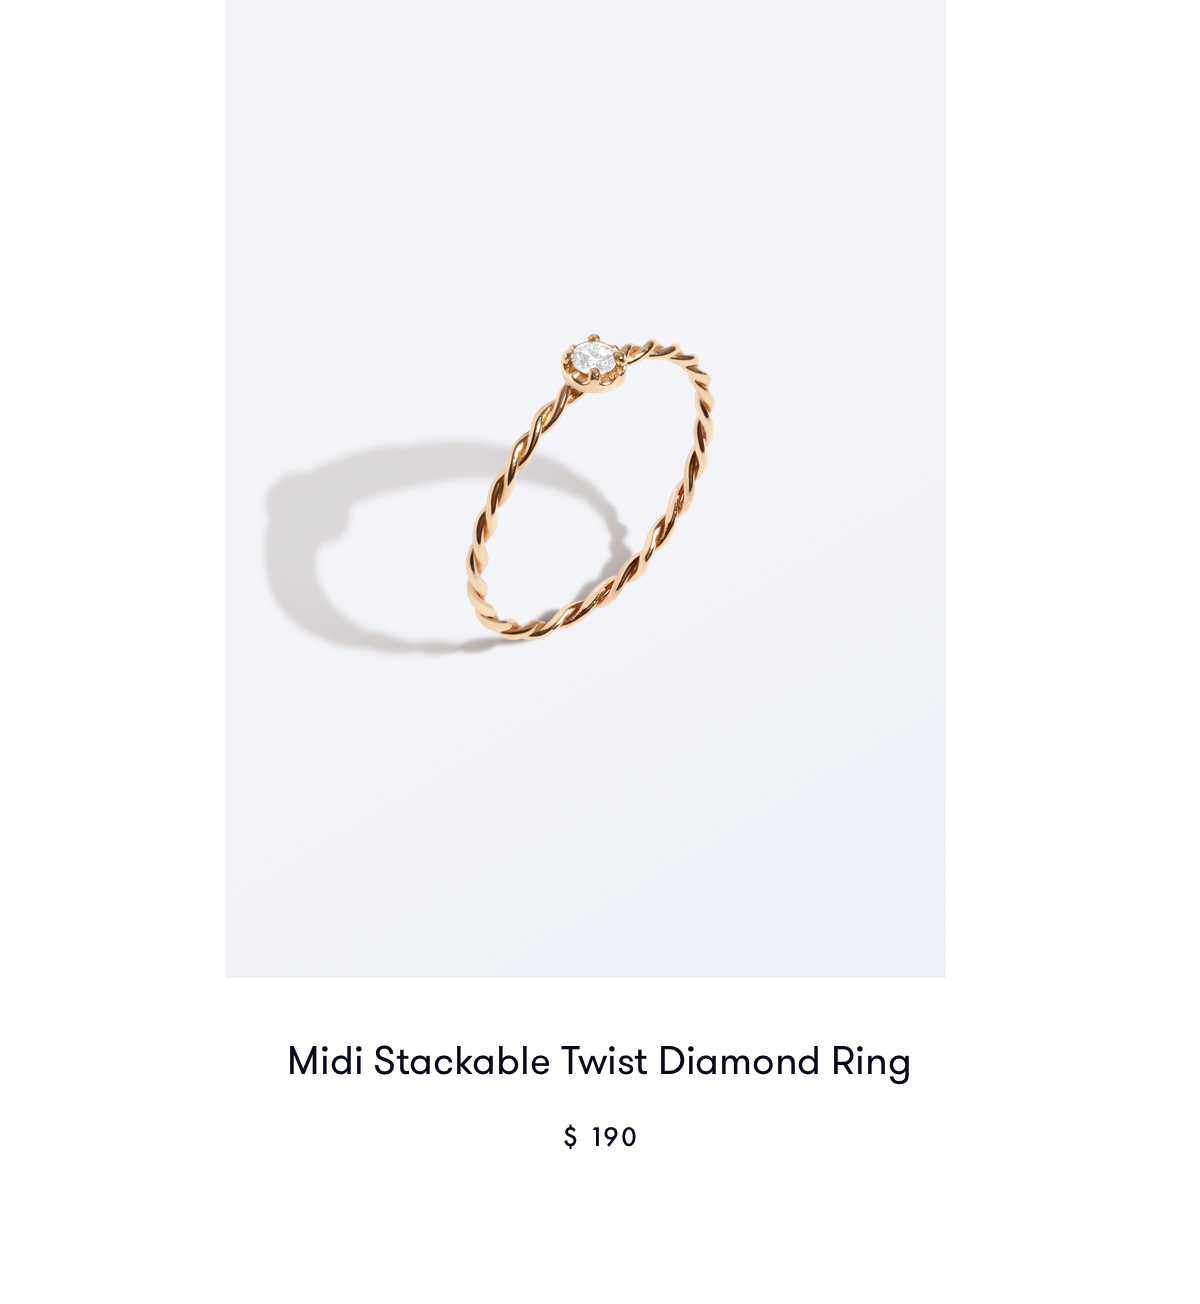 Midi Stackable Twist Diamond Ring